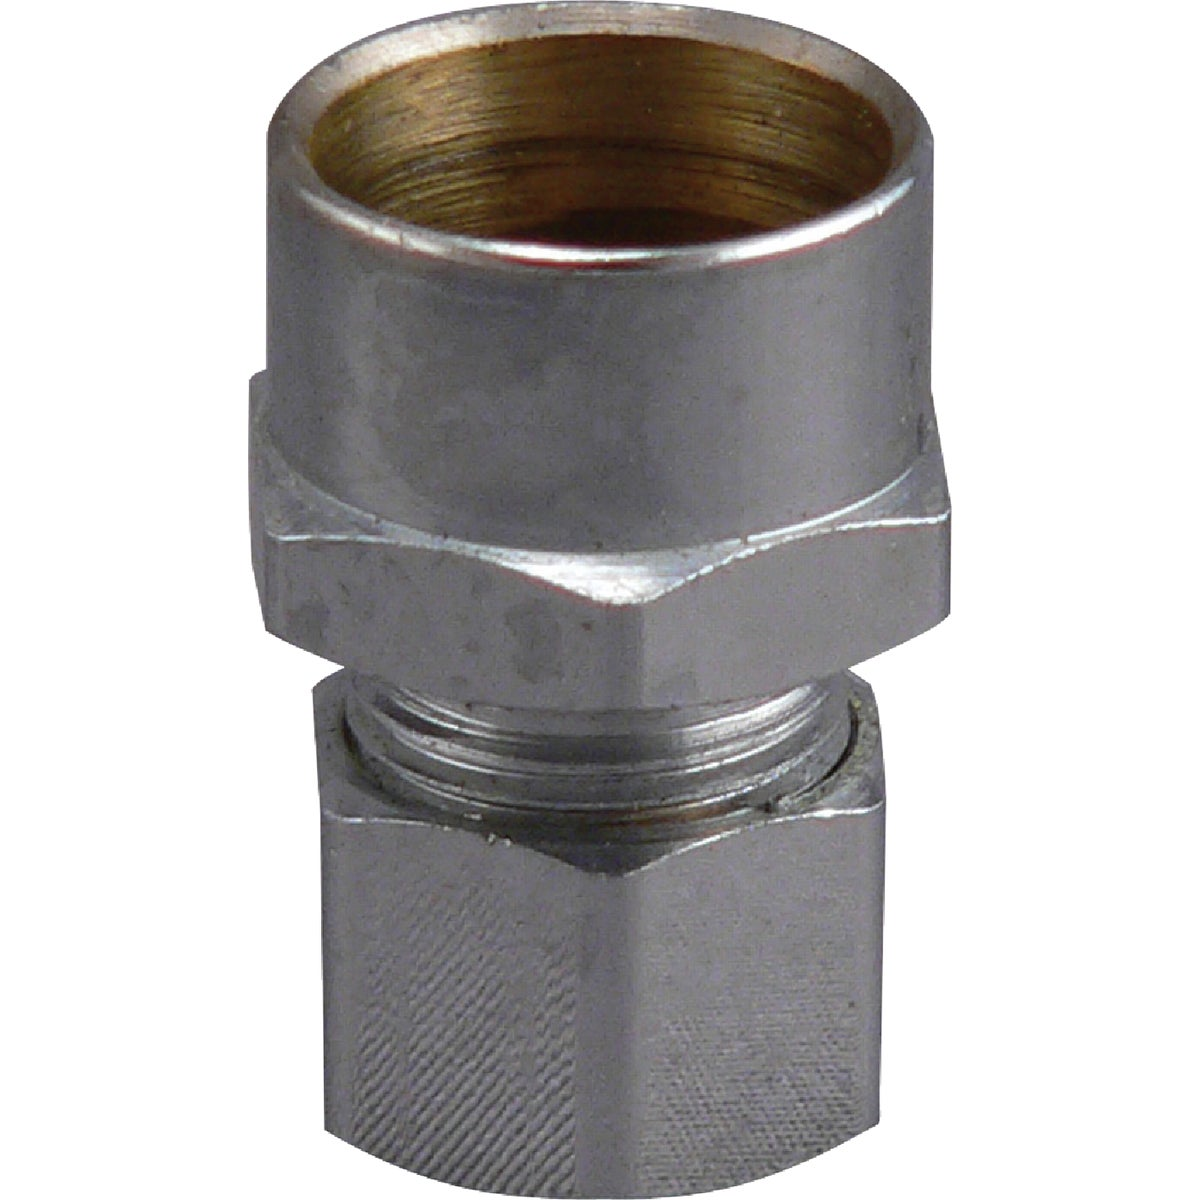 1/2SWX3/8OD STRT UNION - 456009 by Plumb Pak/keeney Mfg